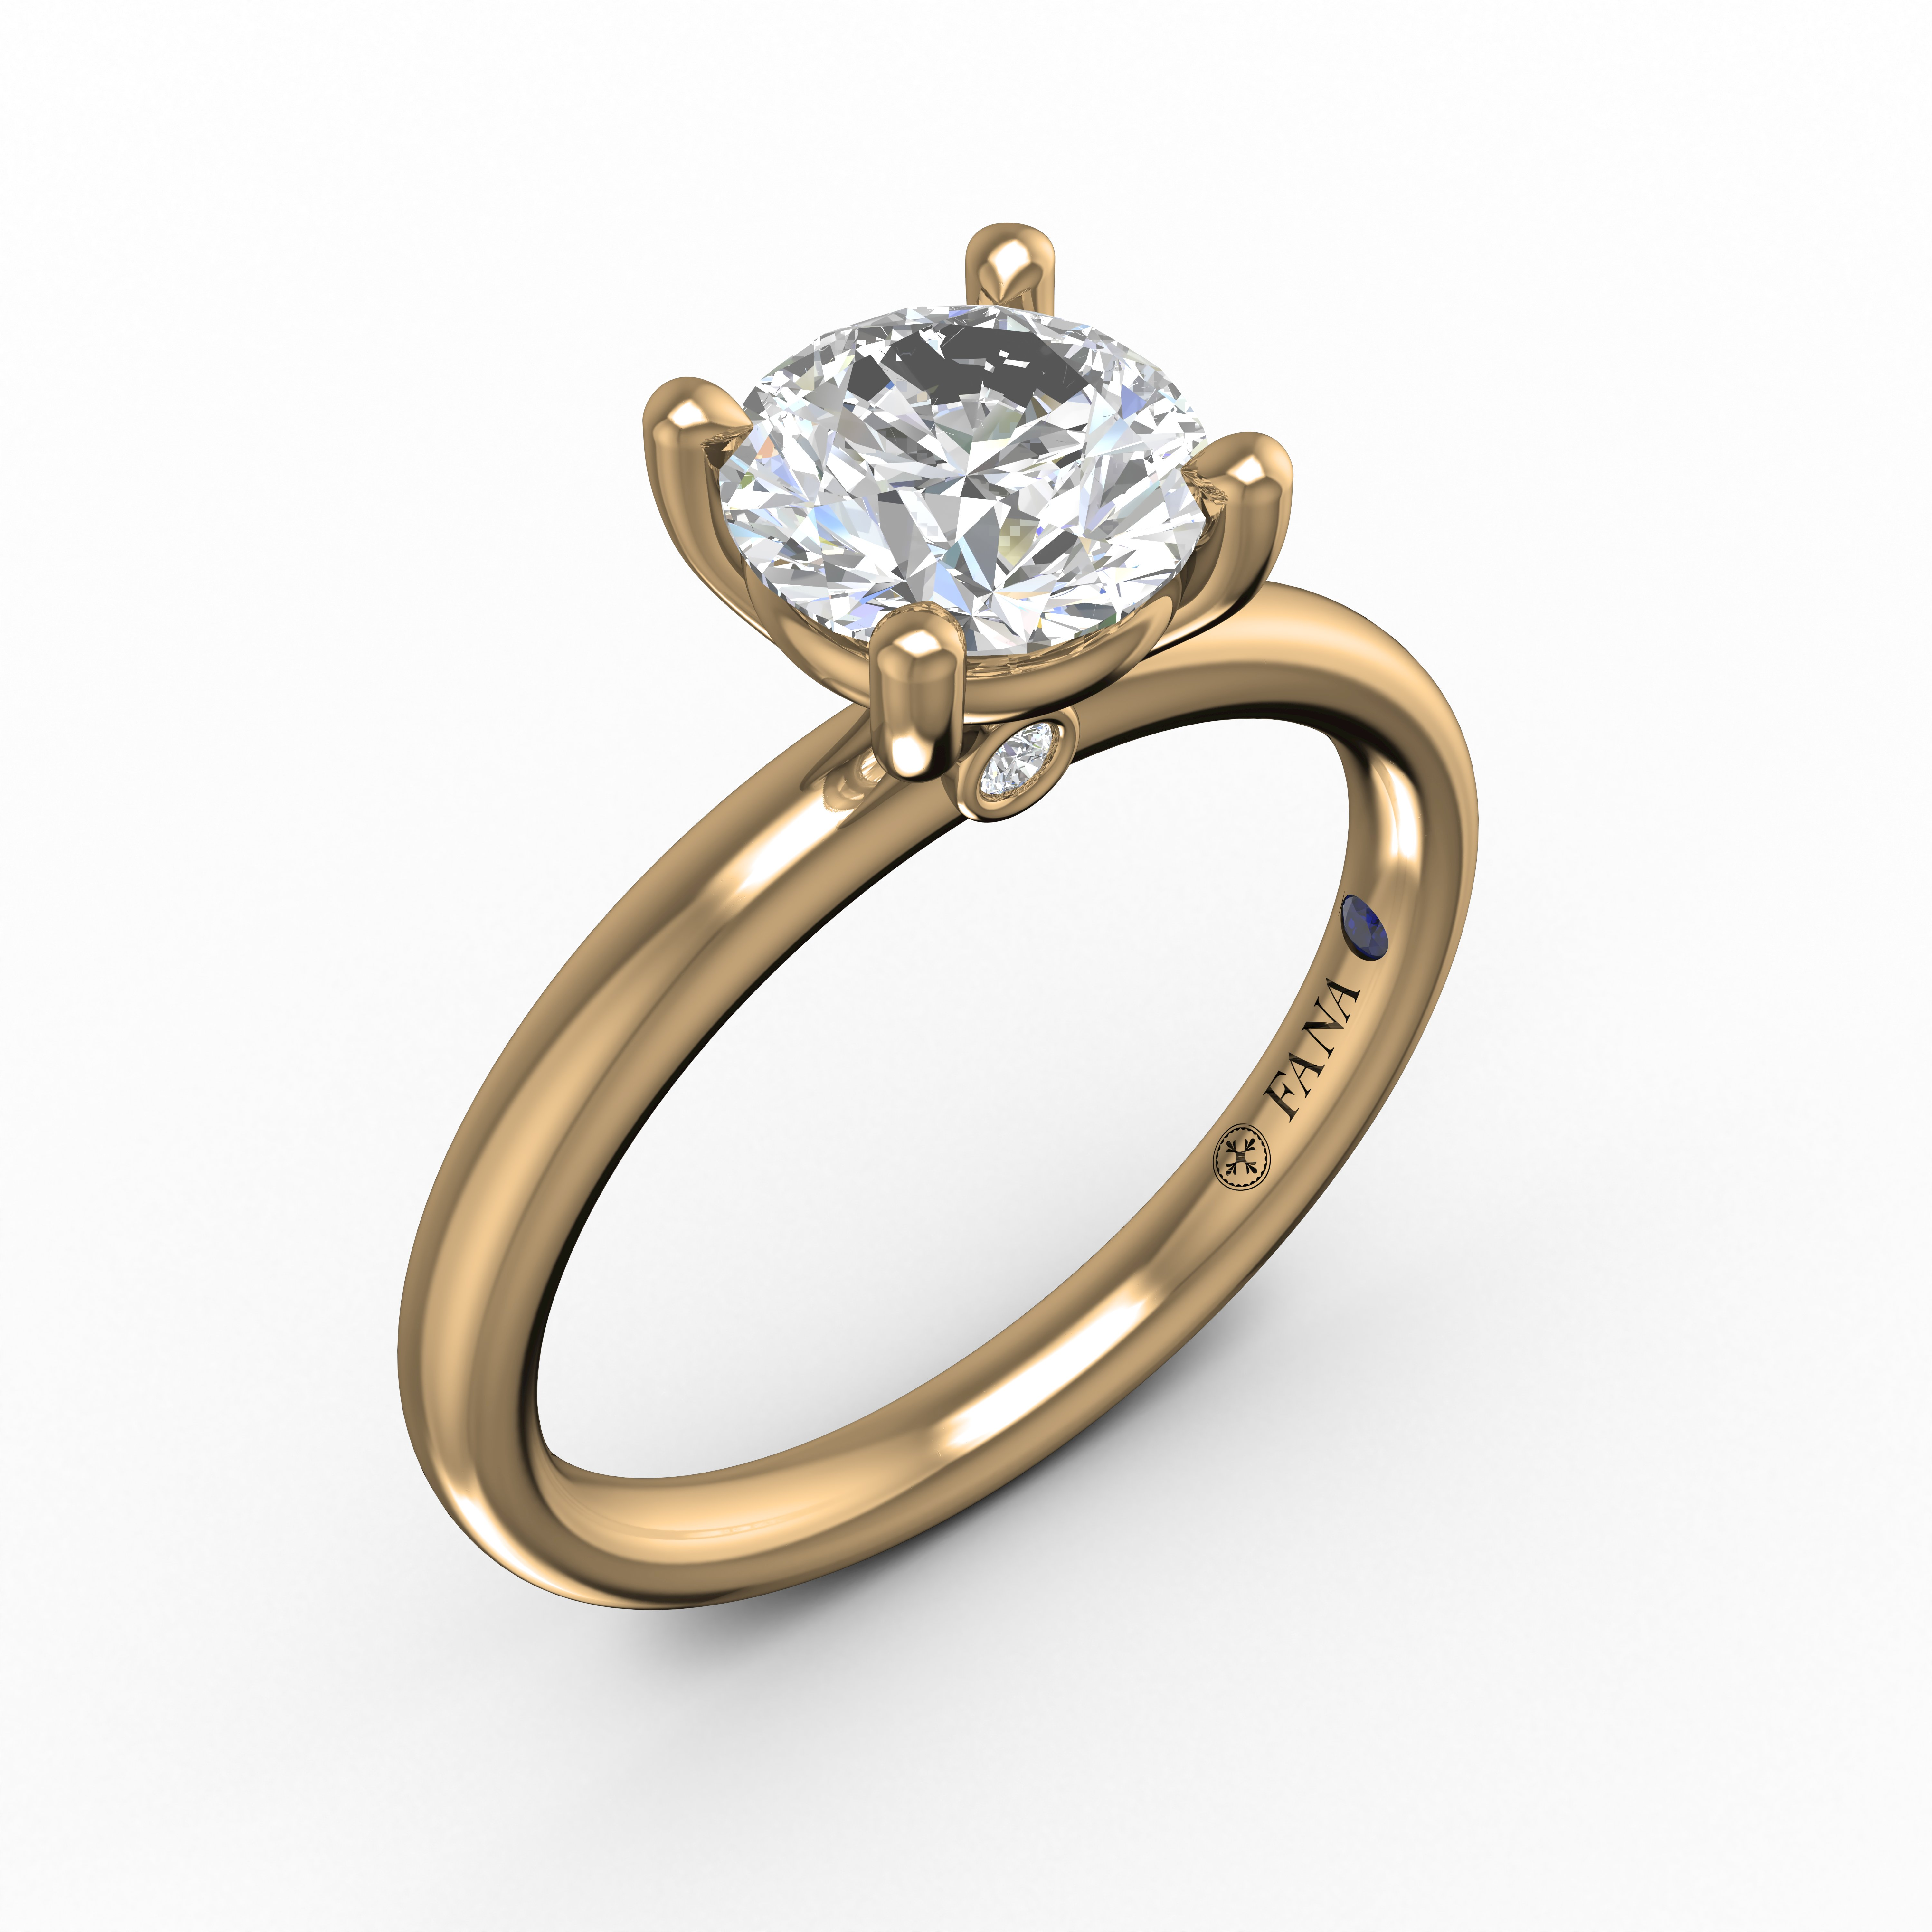 Fana S3842 Yg Simple Round Diamond Engagement Ring